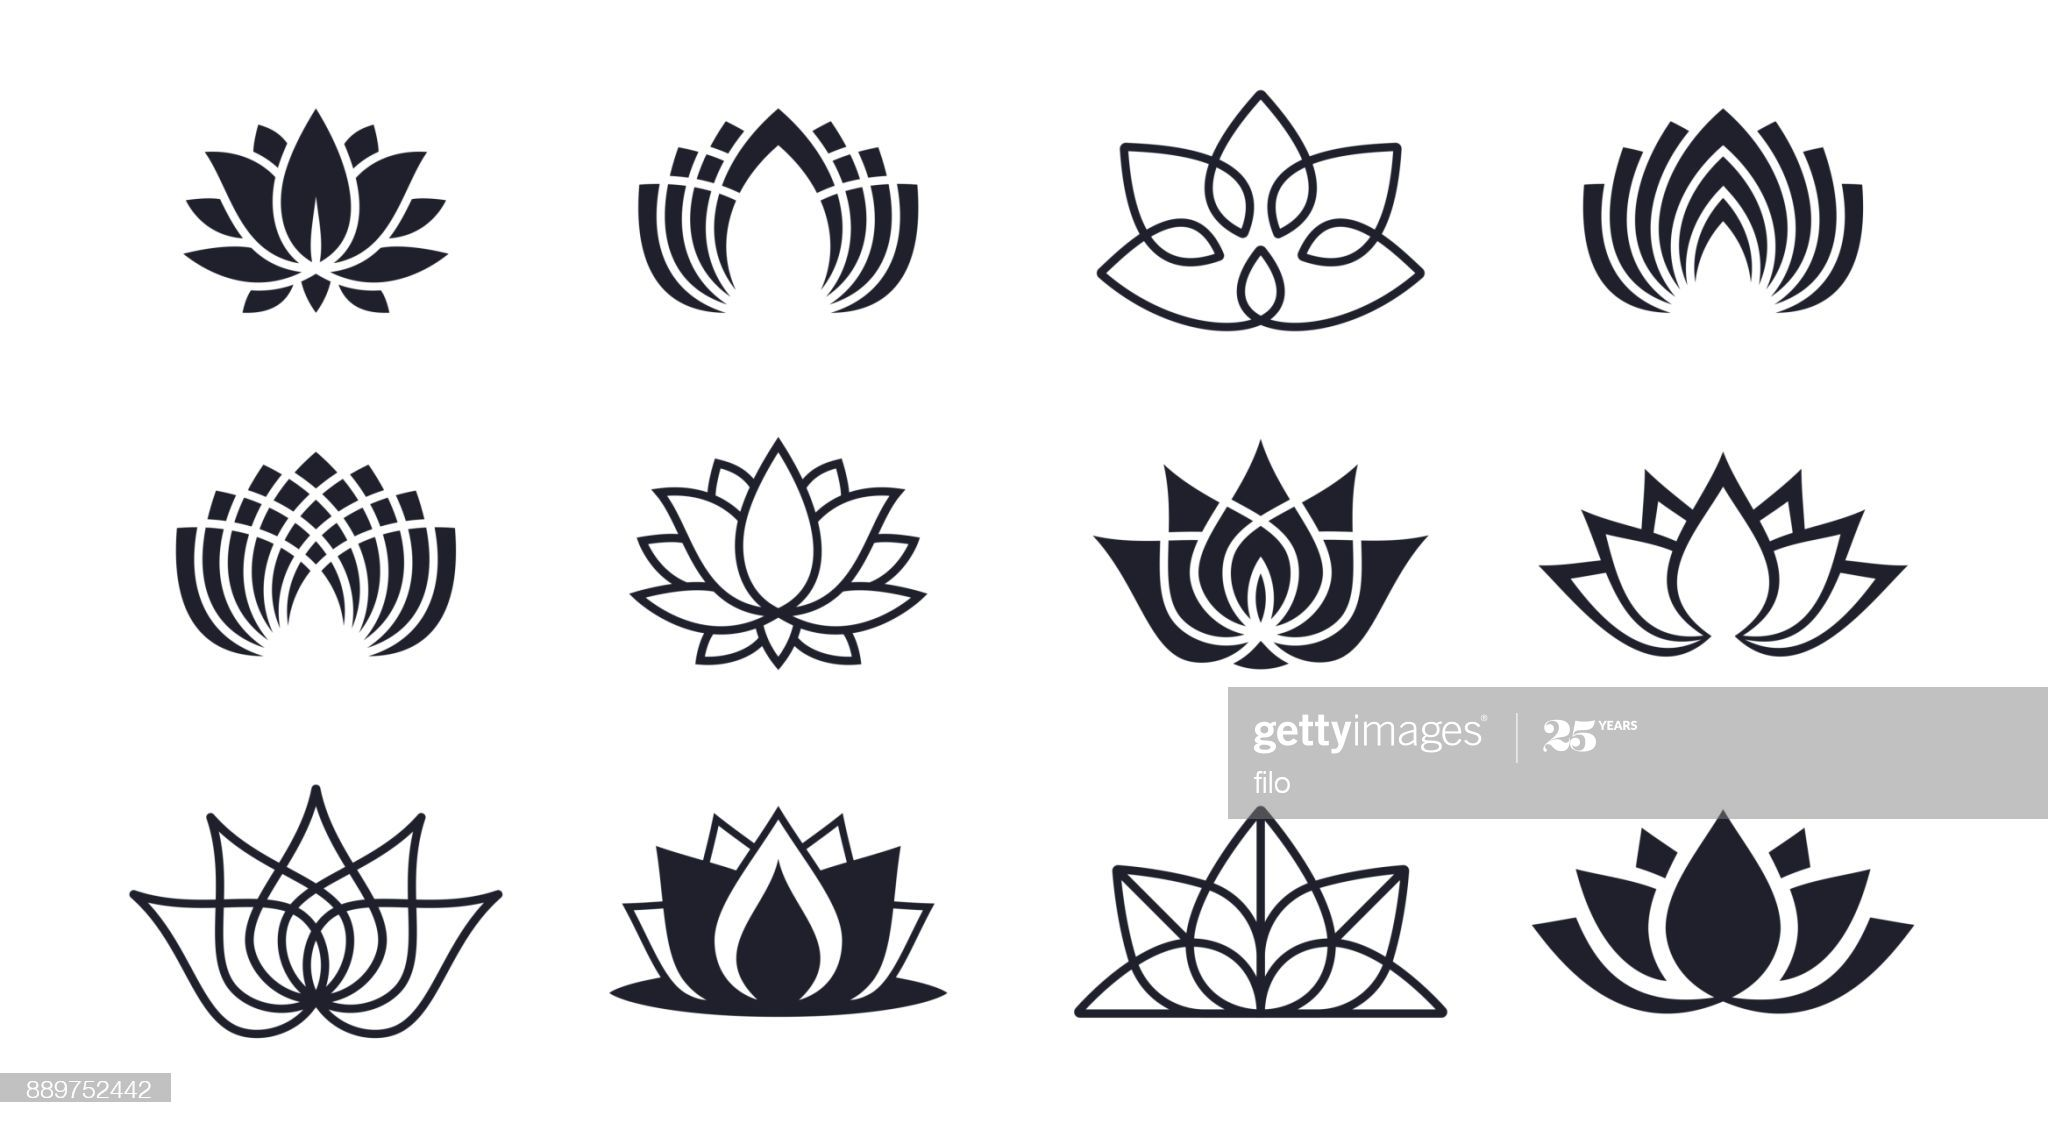 Lotus blossom symbols and icons. in 2020 Free vector